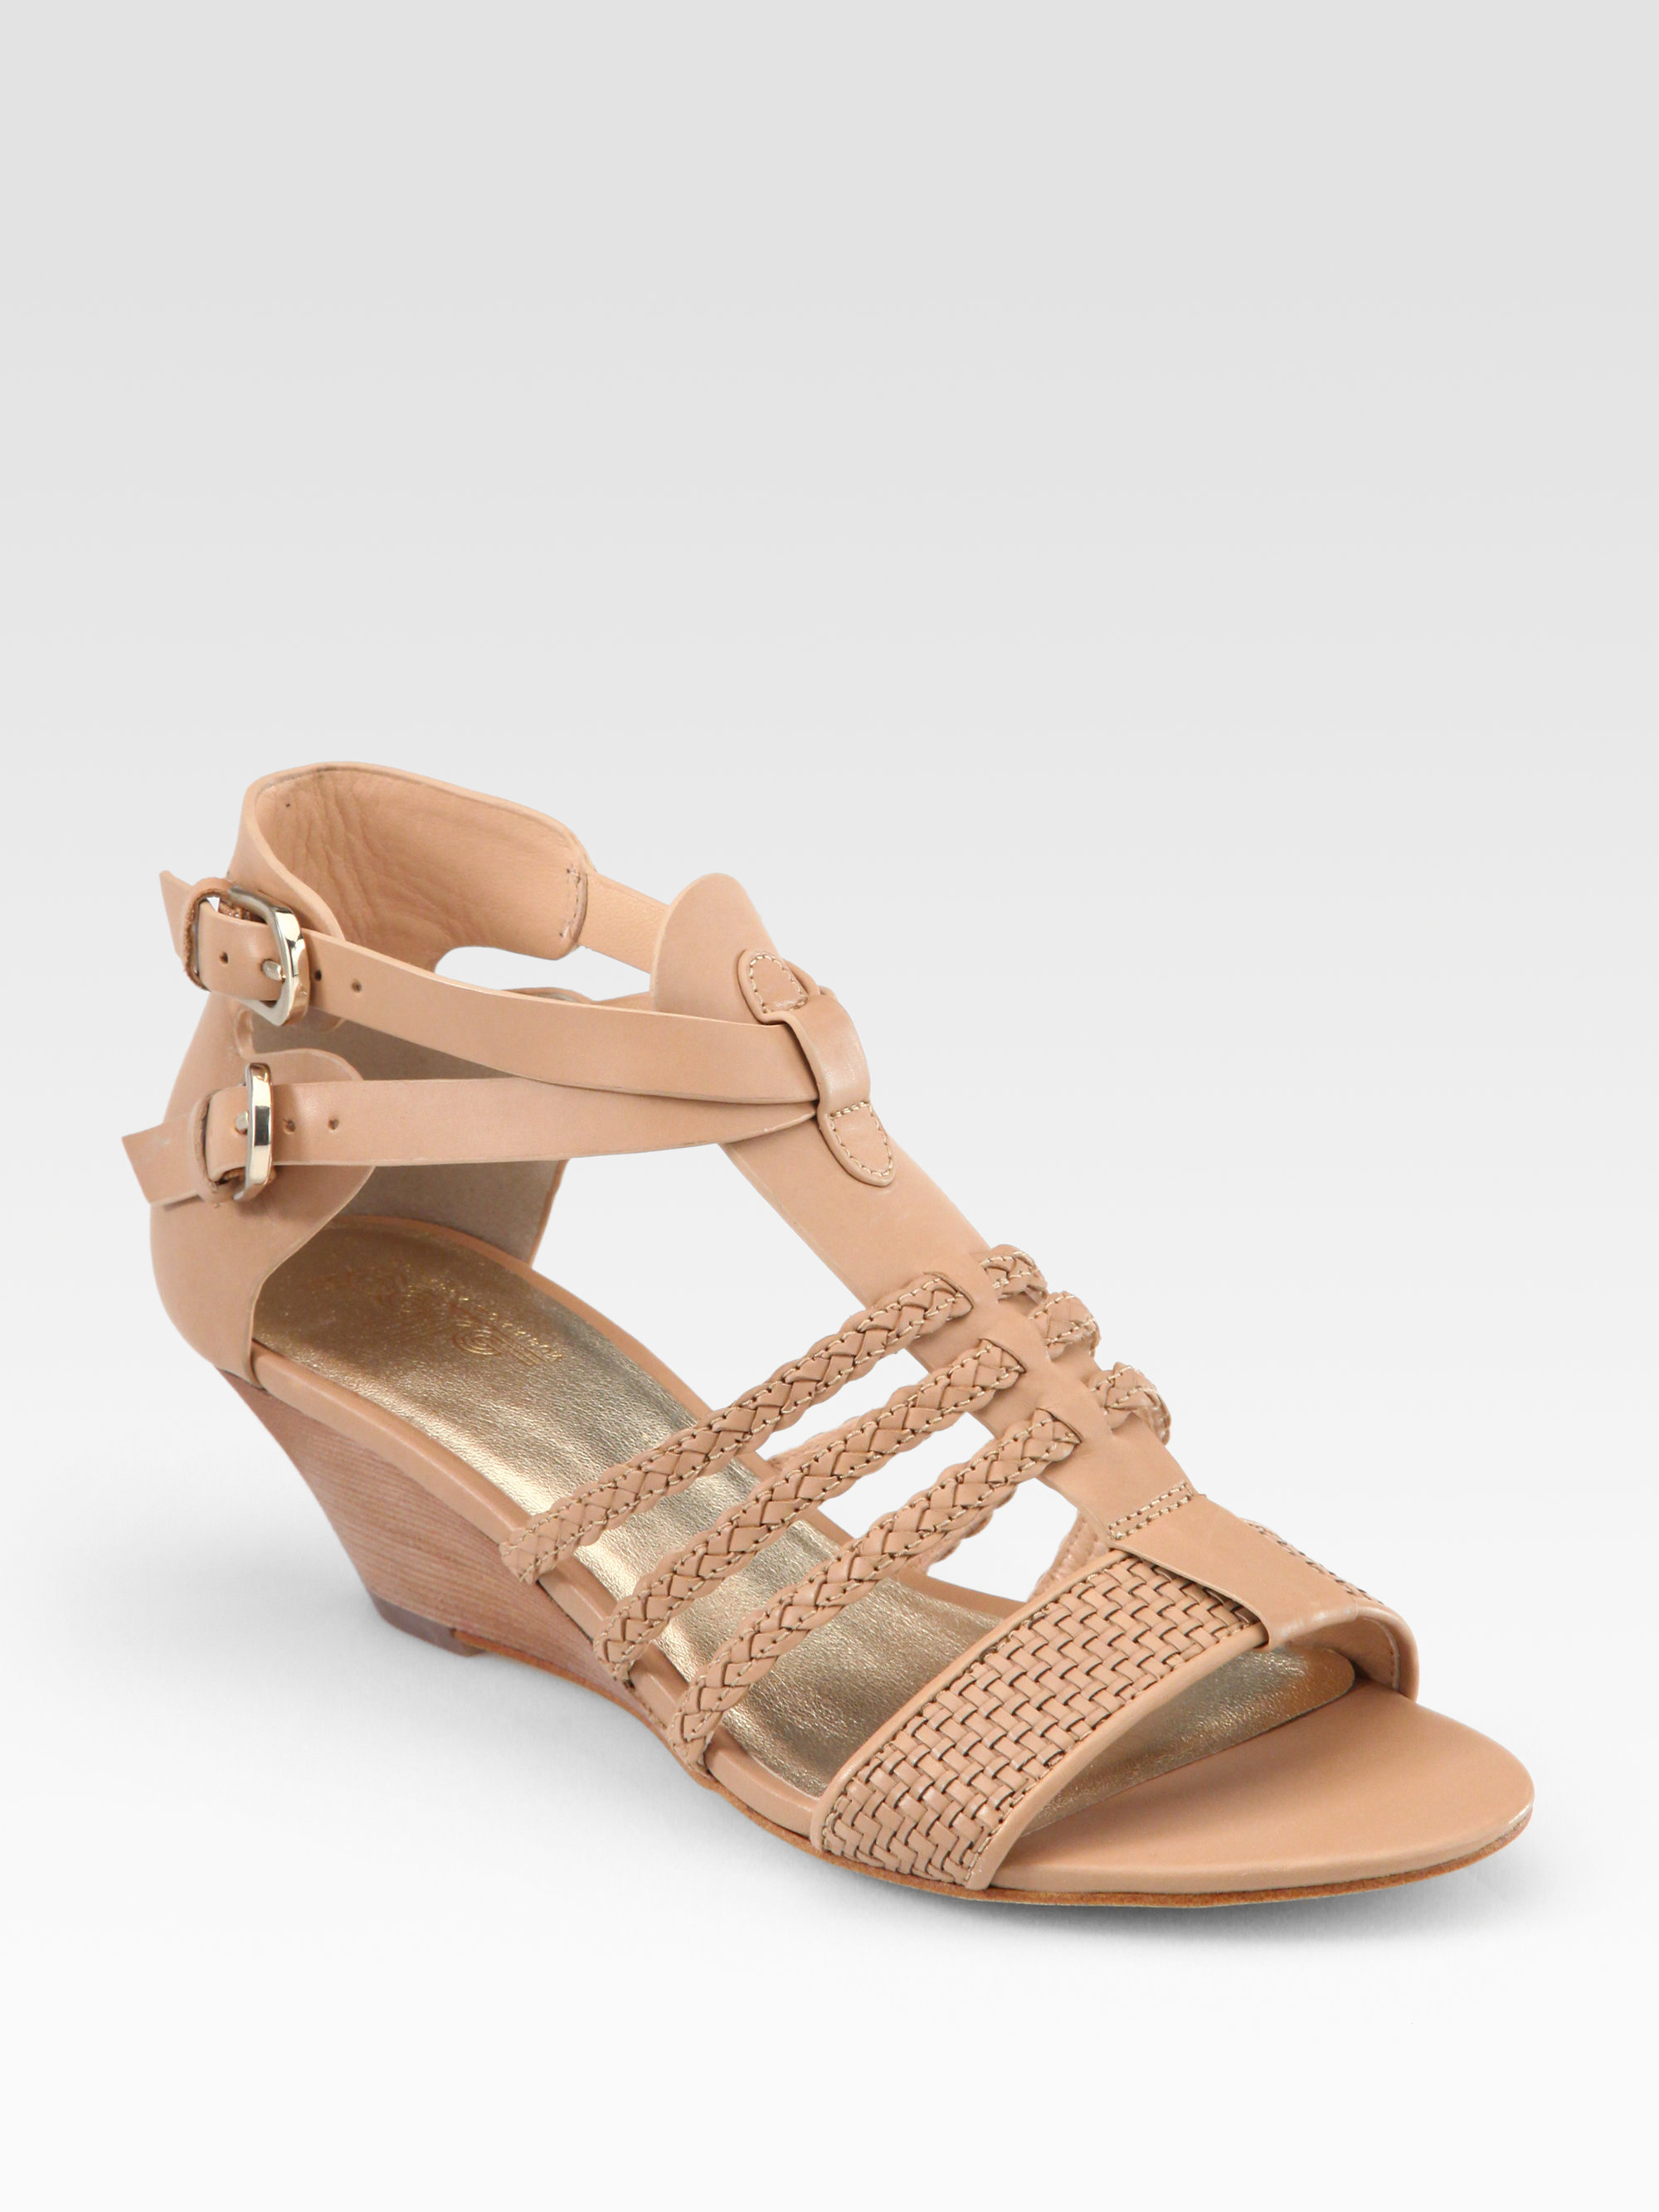 clearance under $60 Sigerson Morrison Woven Leather Wedges buy cheap deals QWmO73